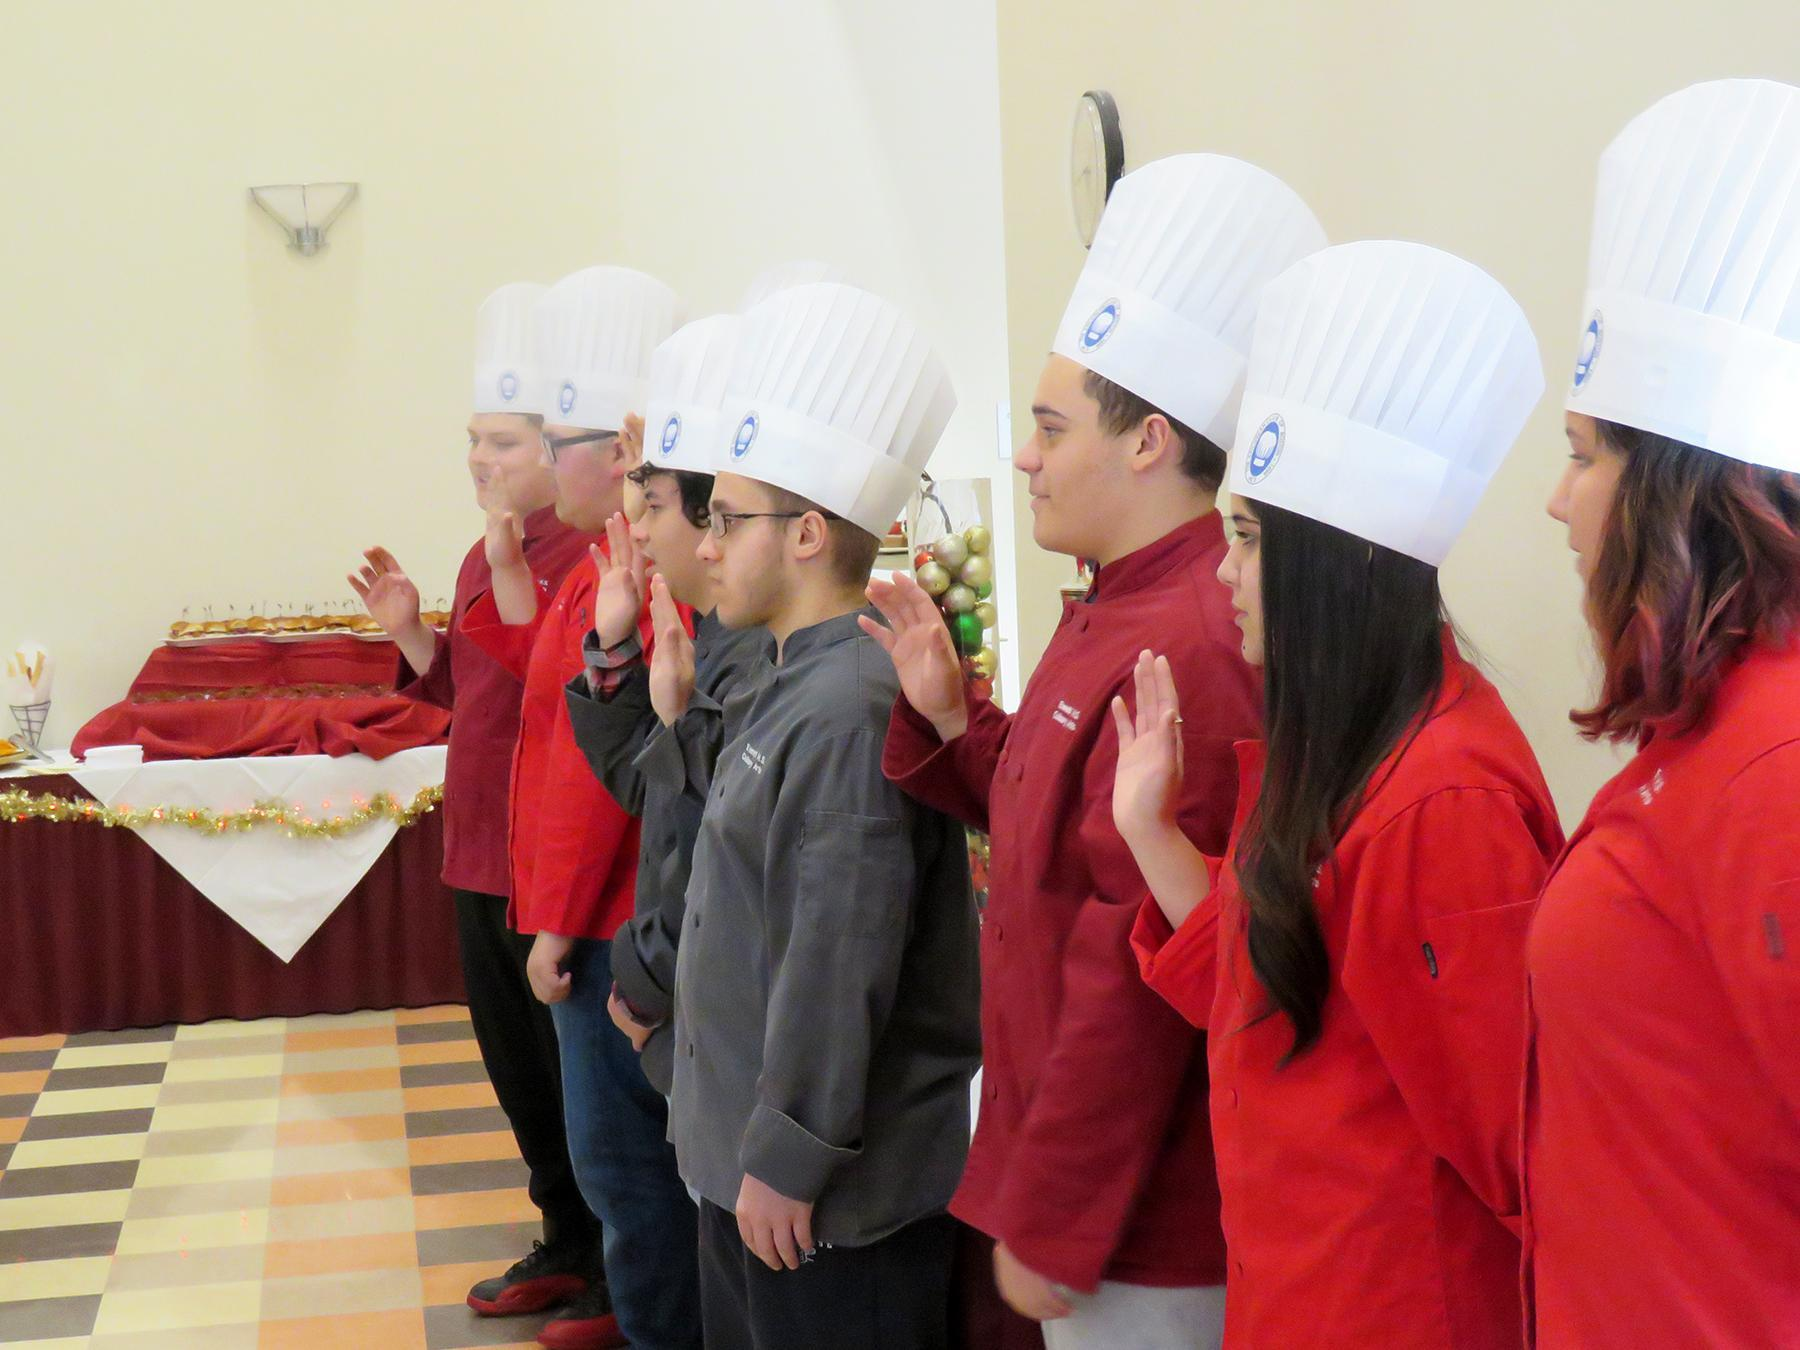 Students take the oath as junior members of the American Culinary Federation